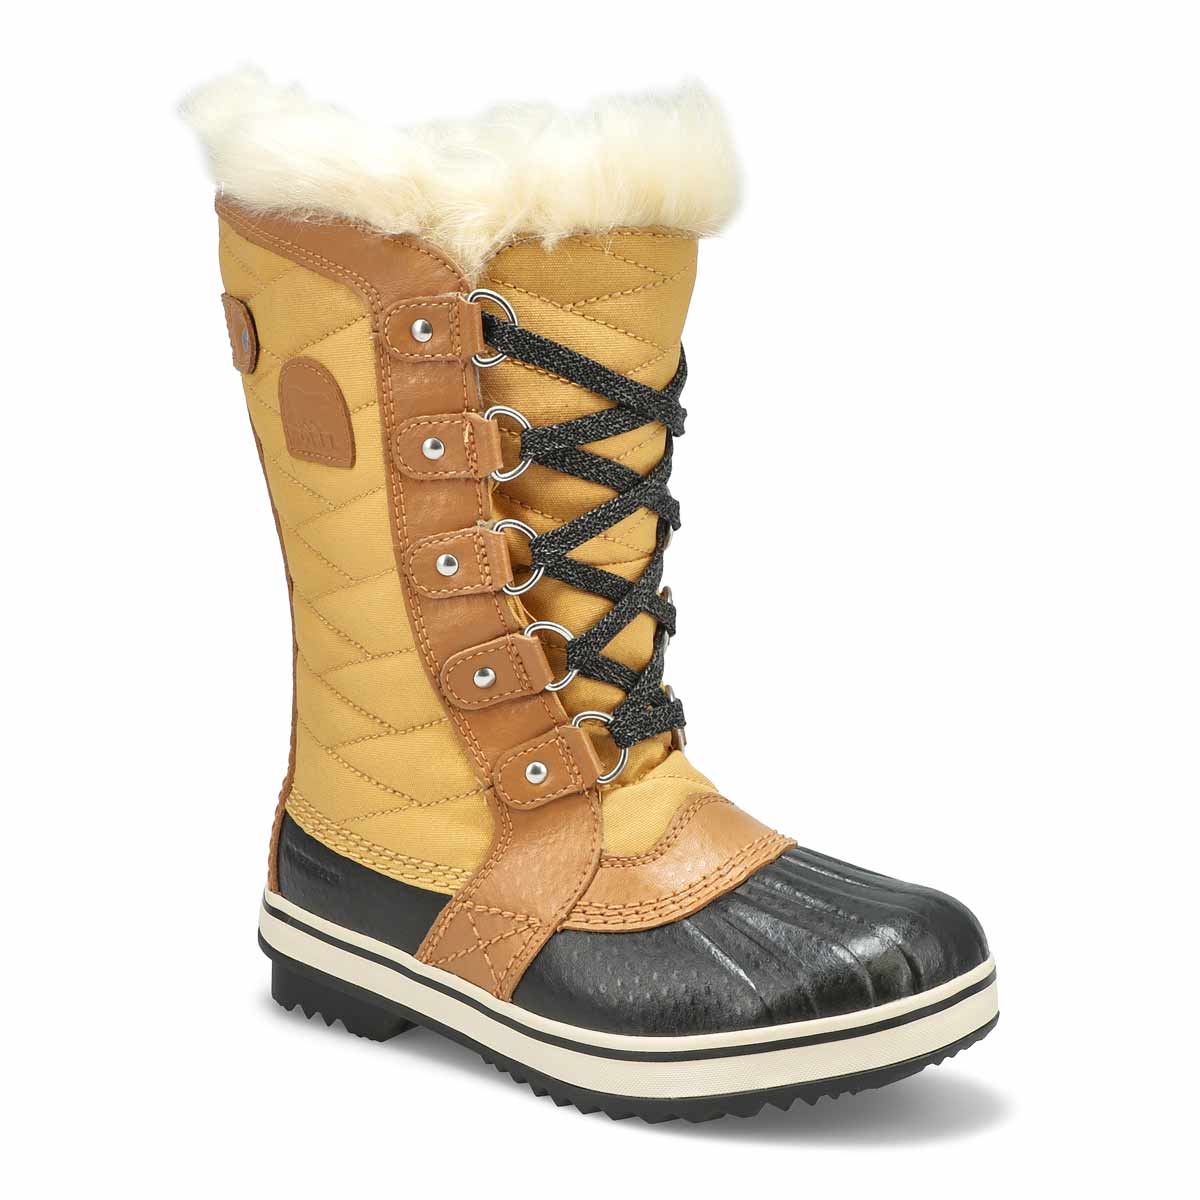 Girls' TOFINO II curry waterproof snow boots